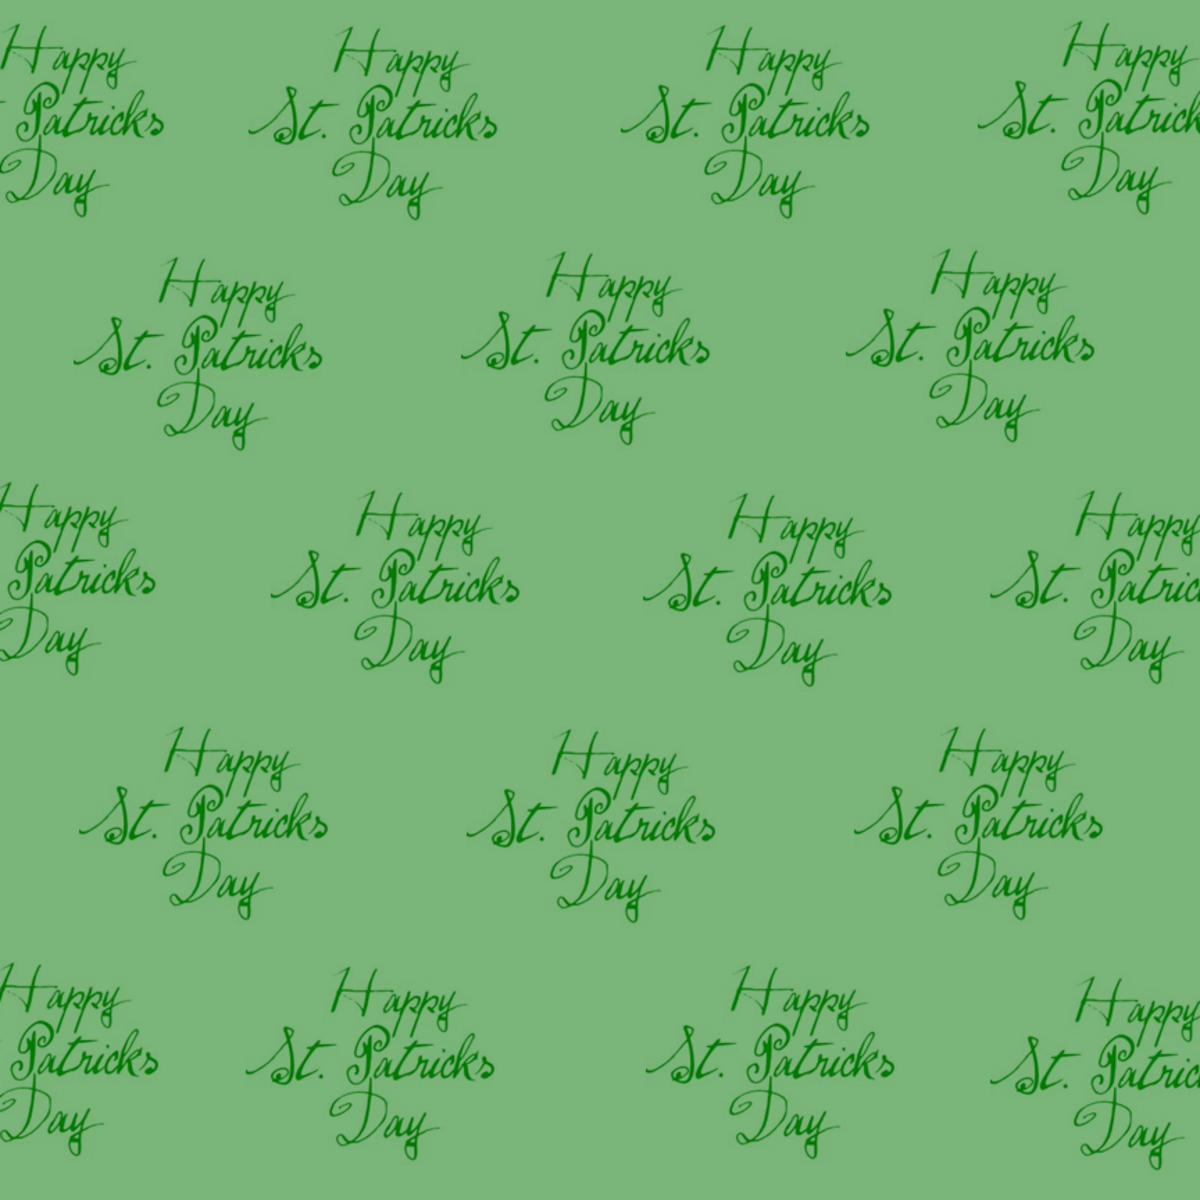 Free happy St. Patrick's Day scrapbook papers: green background